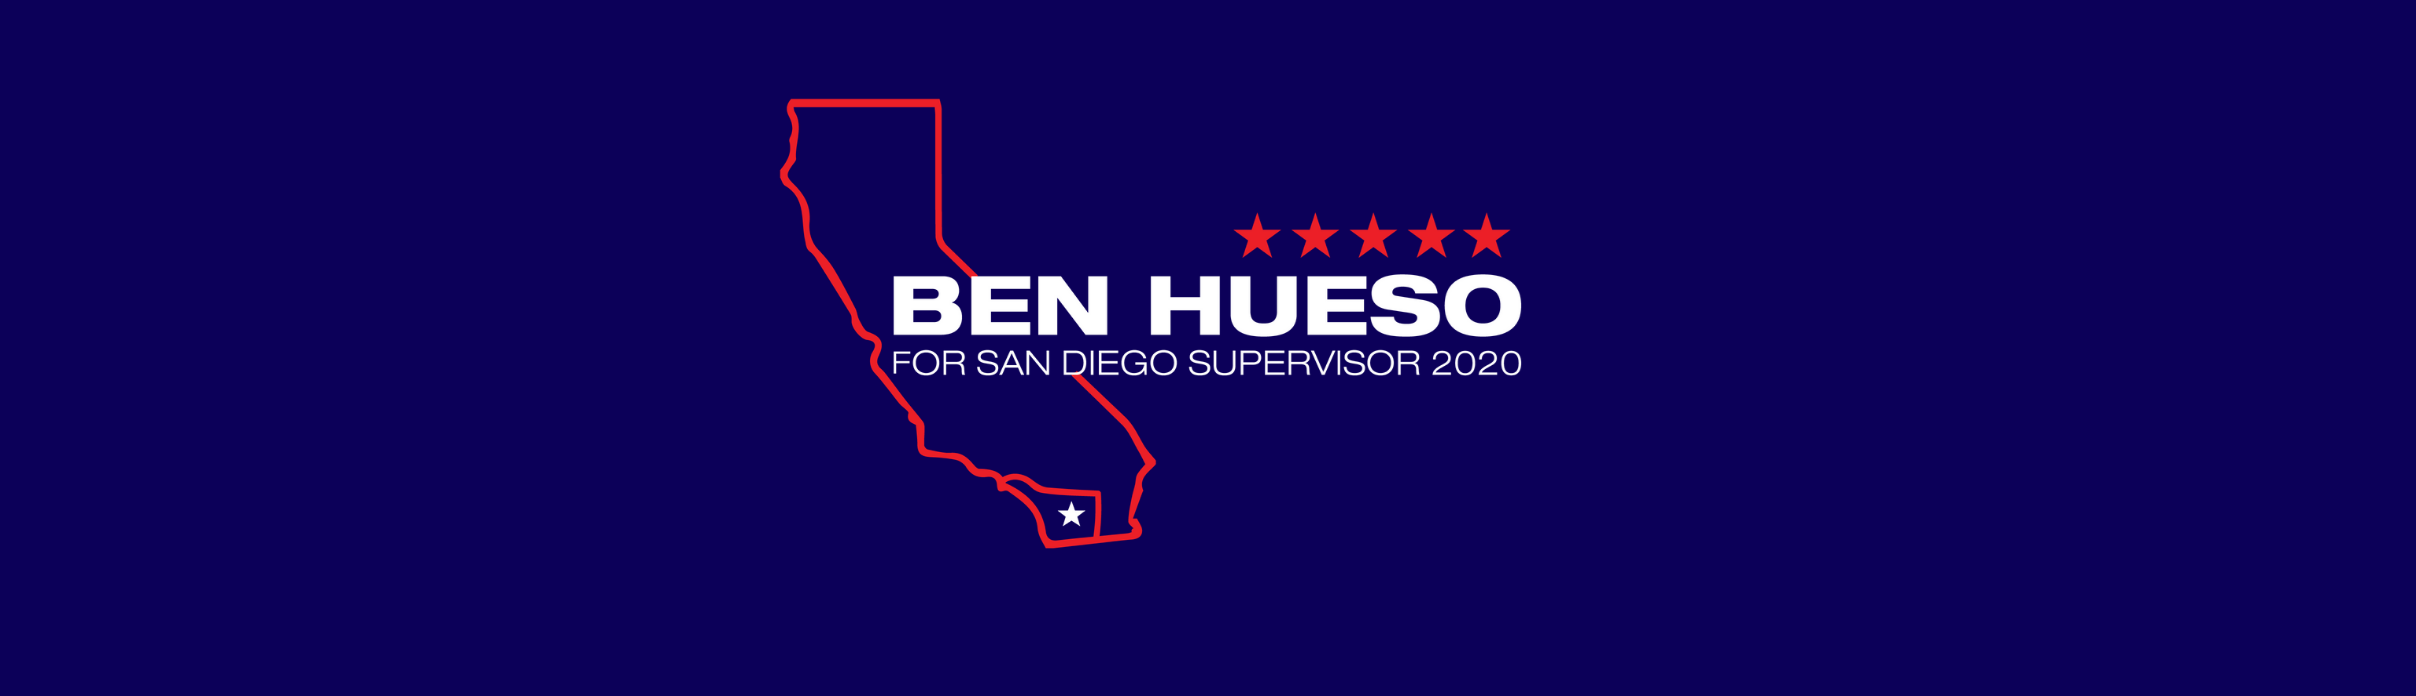 Ben Hueso for Supervisor 2020